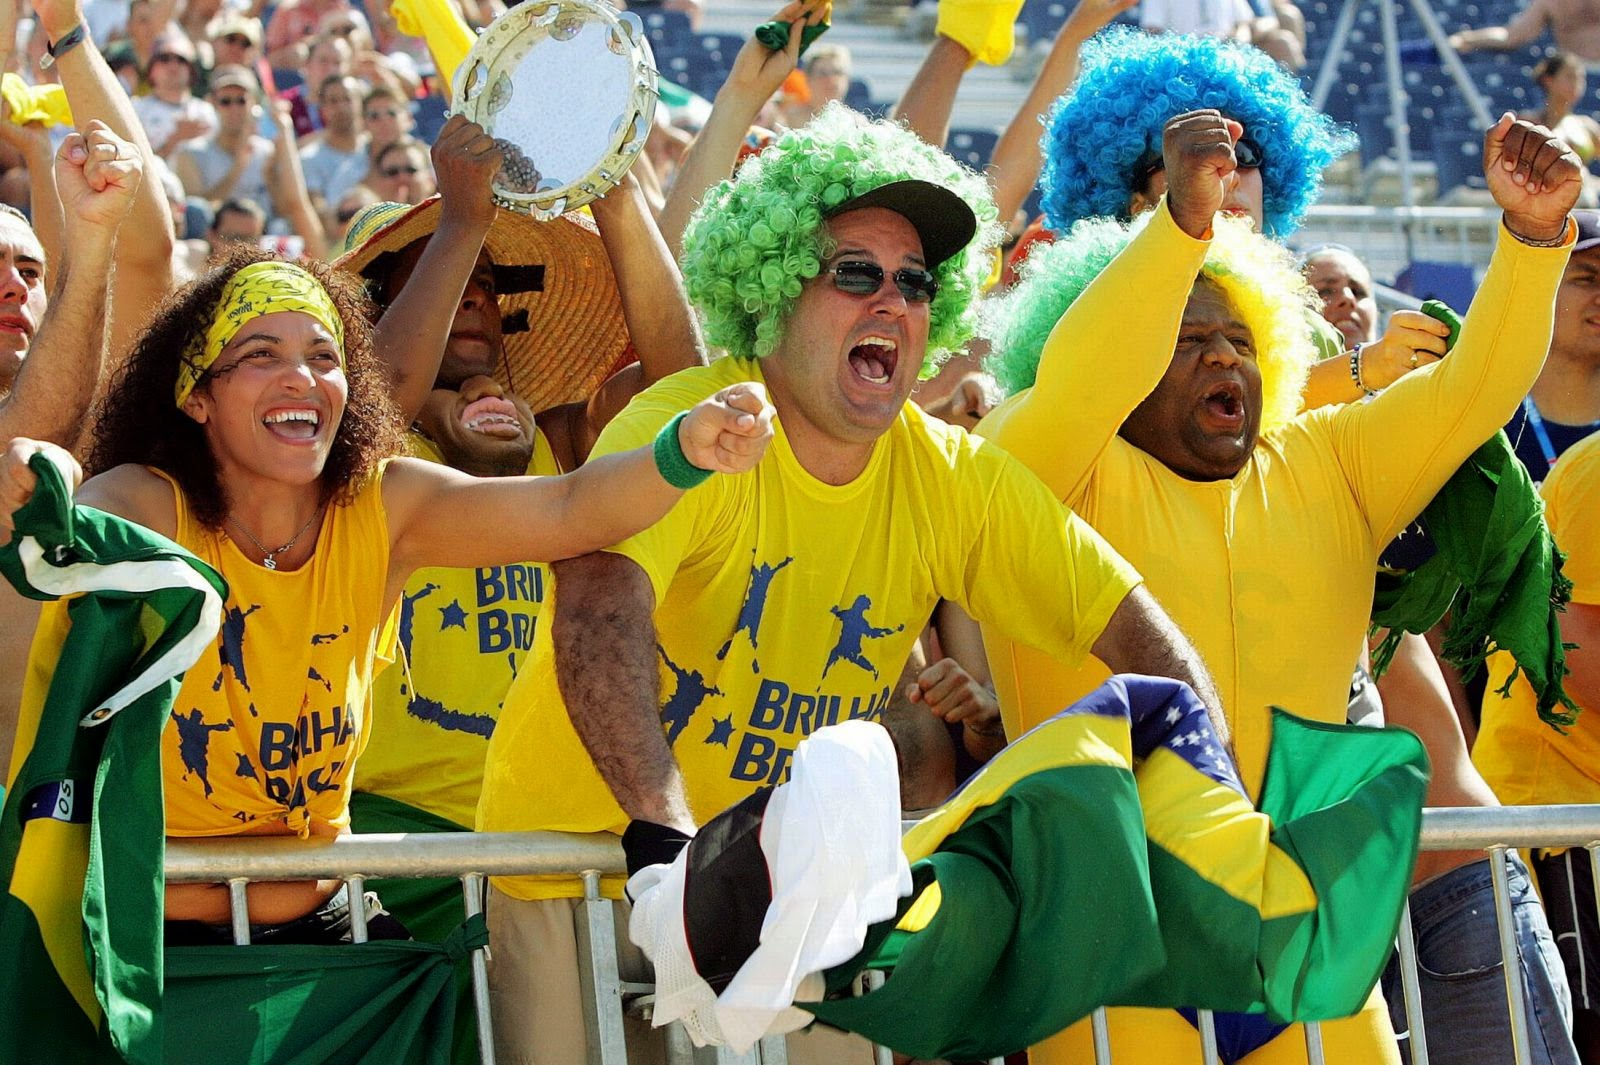 Brazil football world cup 2014 fans